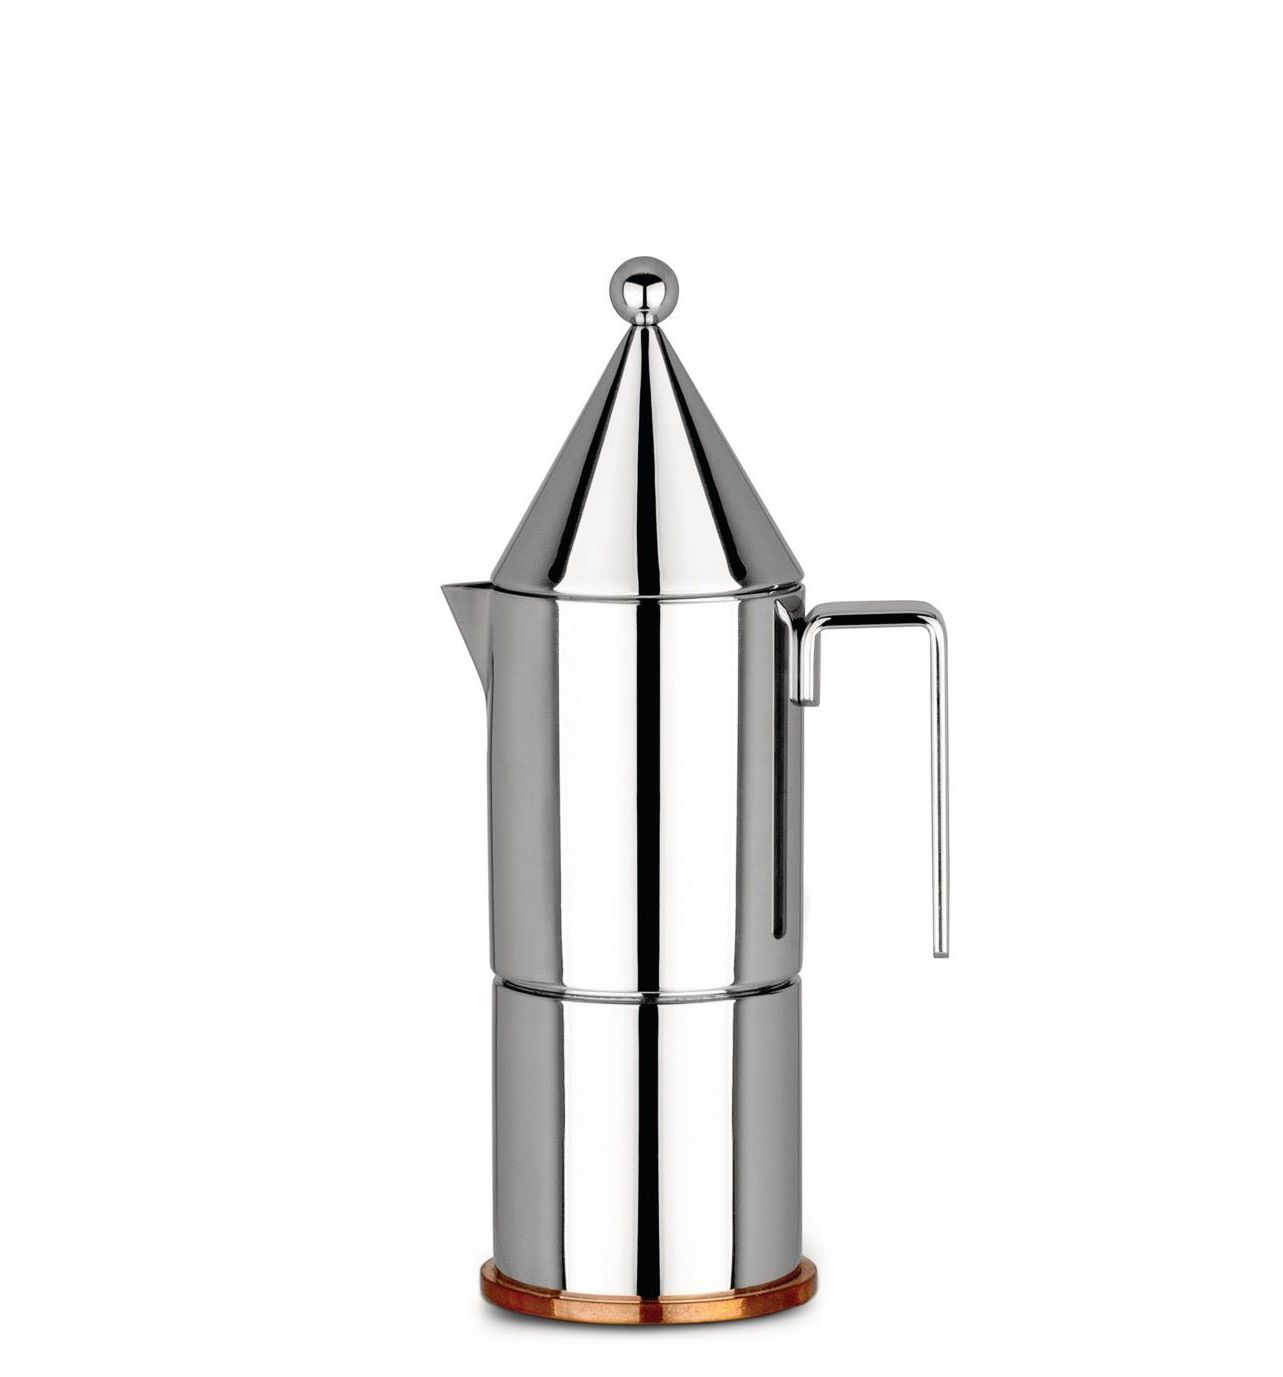 Alessi Percolator 90002/3 La Conica Door Aldo Rossi - 3 Kops